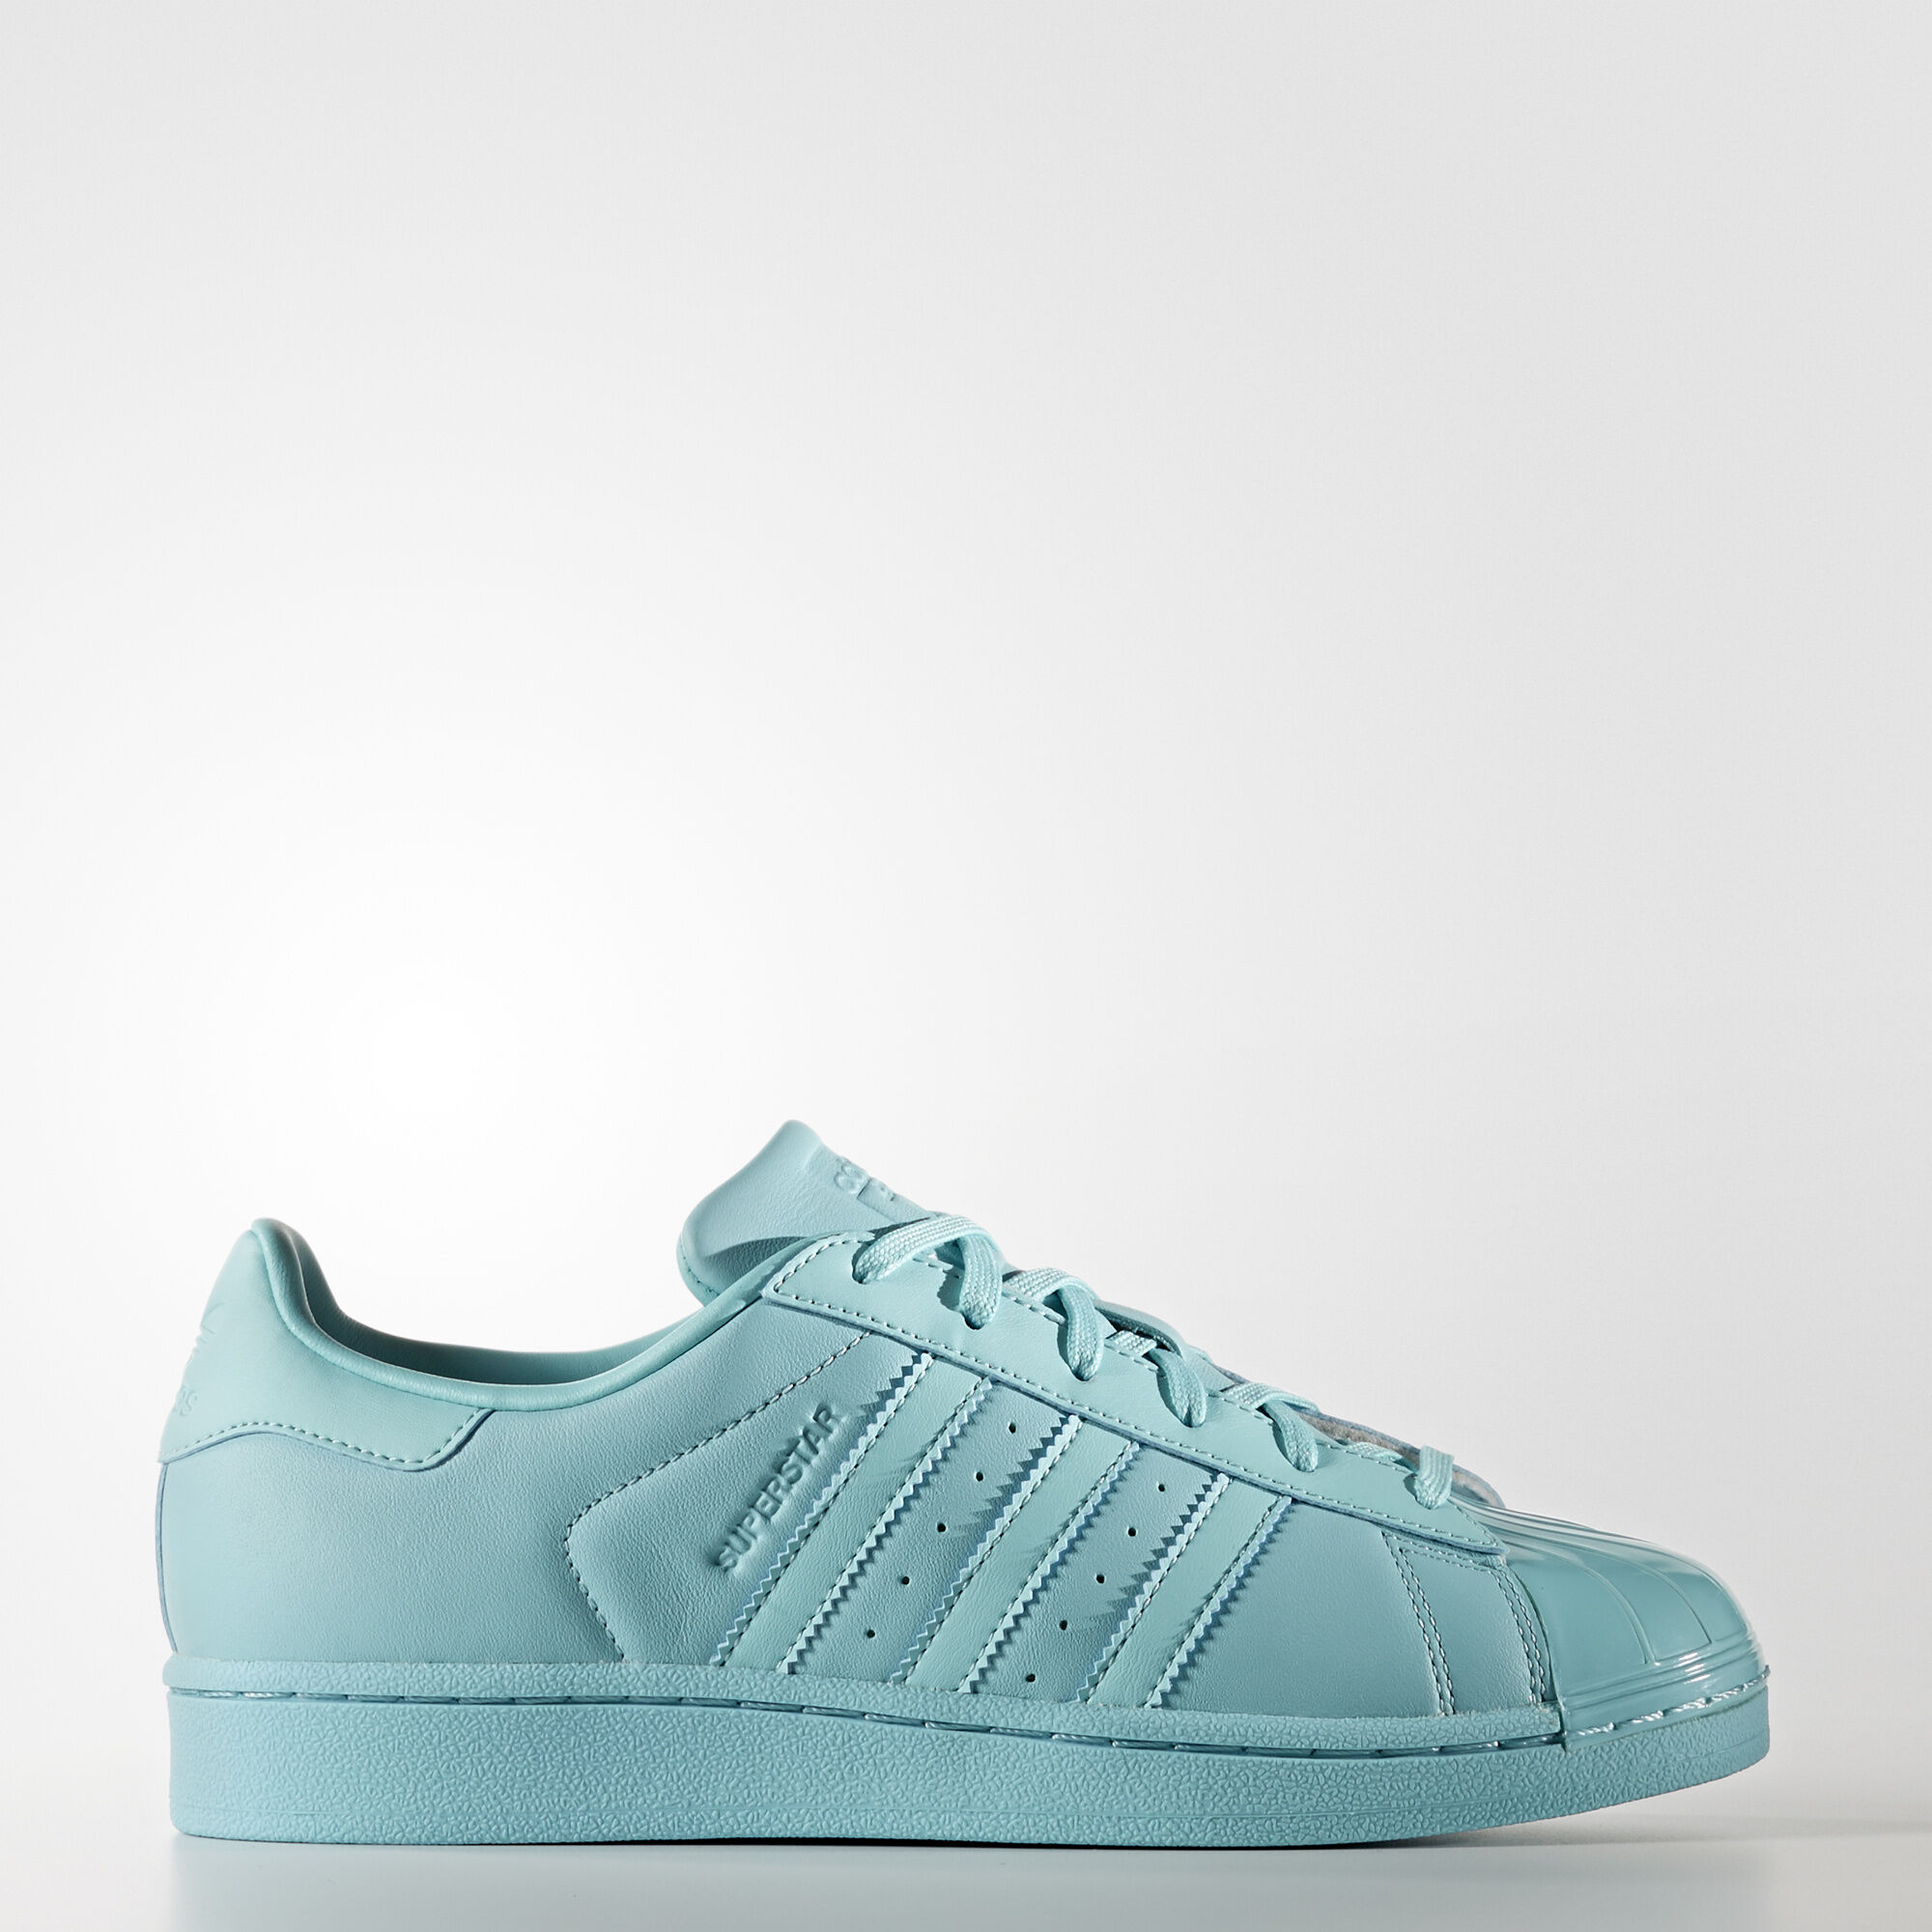 Adidas All Star Tornasol